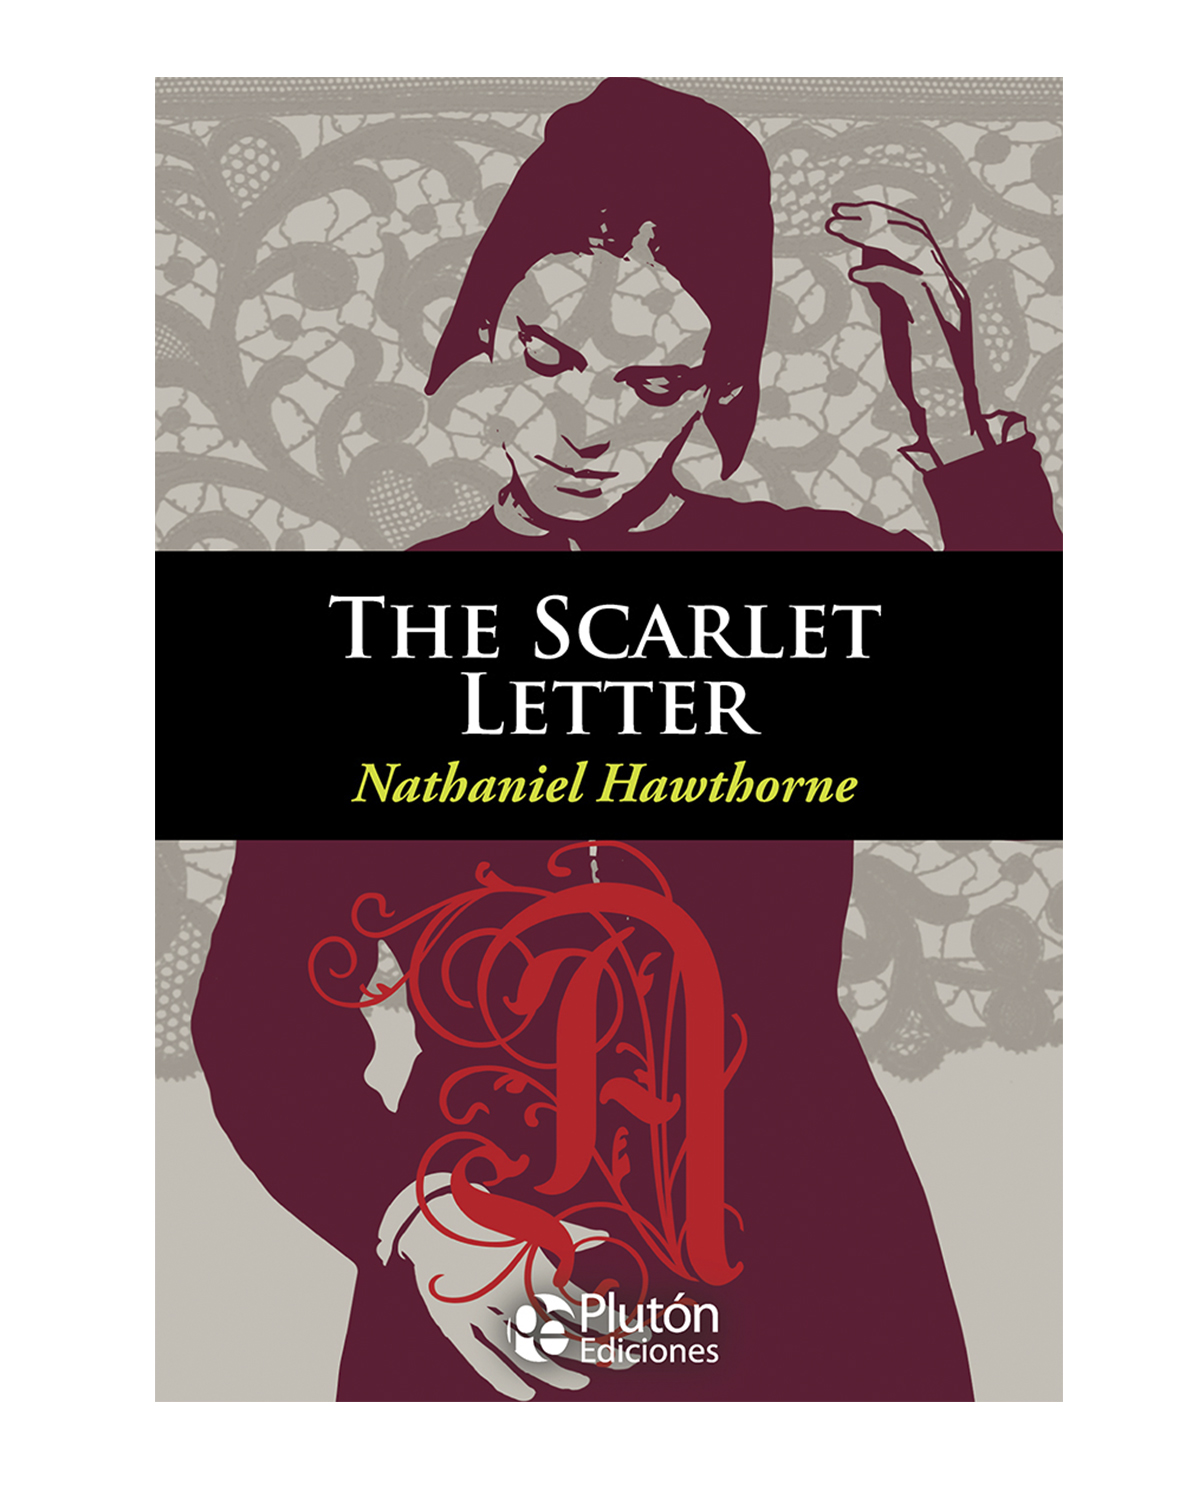 morality in the scarlet letter by nathaniel hawthorne The scarlet letter (nathaniel hawthorne) at booksamillioncom hailed by henry james as the finest piece of imaginative writing yet put forth in the country, nathaniel hawthorne's the scarlet letter reaches to our nation's historical and moral roots for the material of great tragedy.